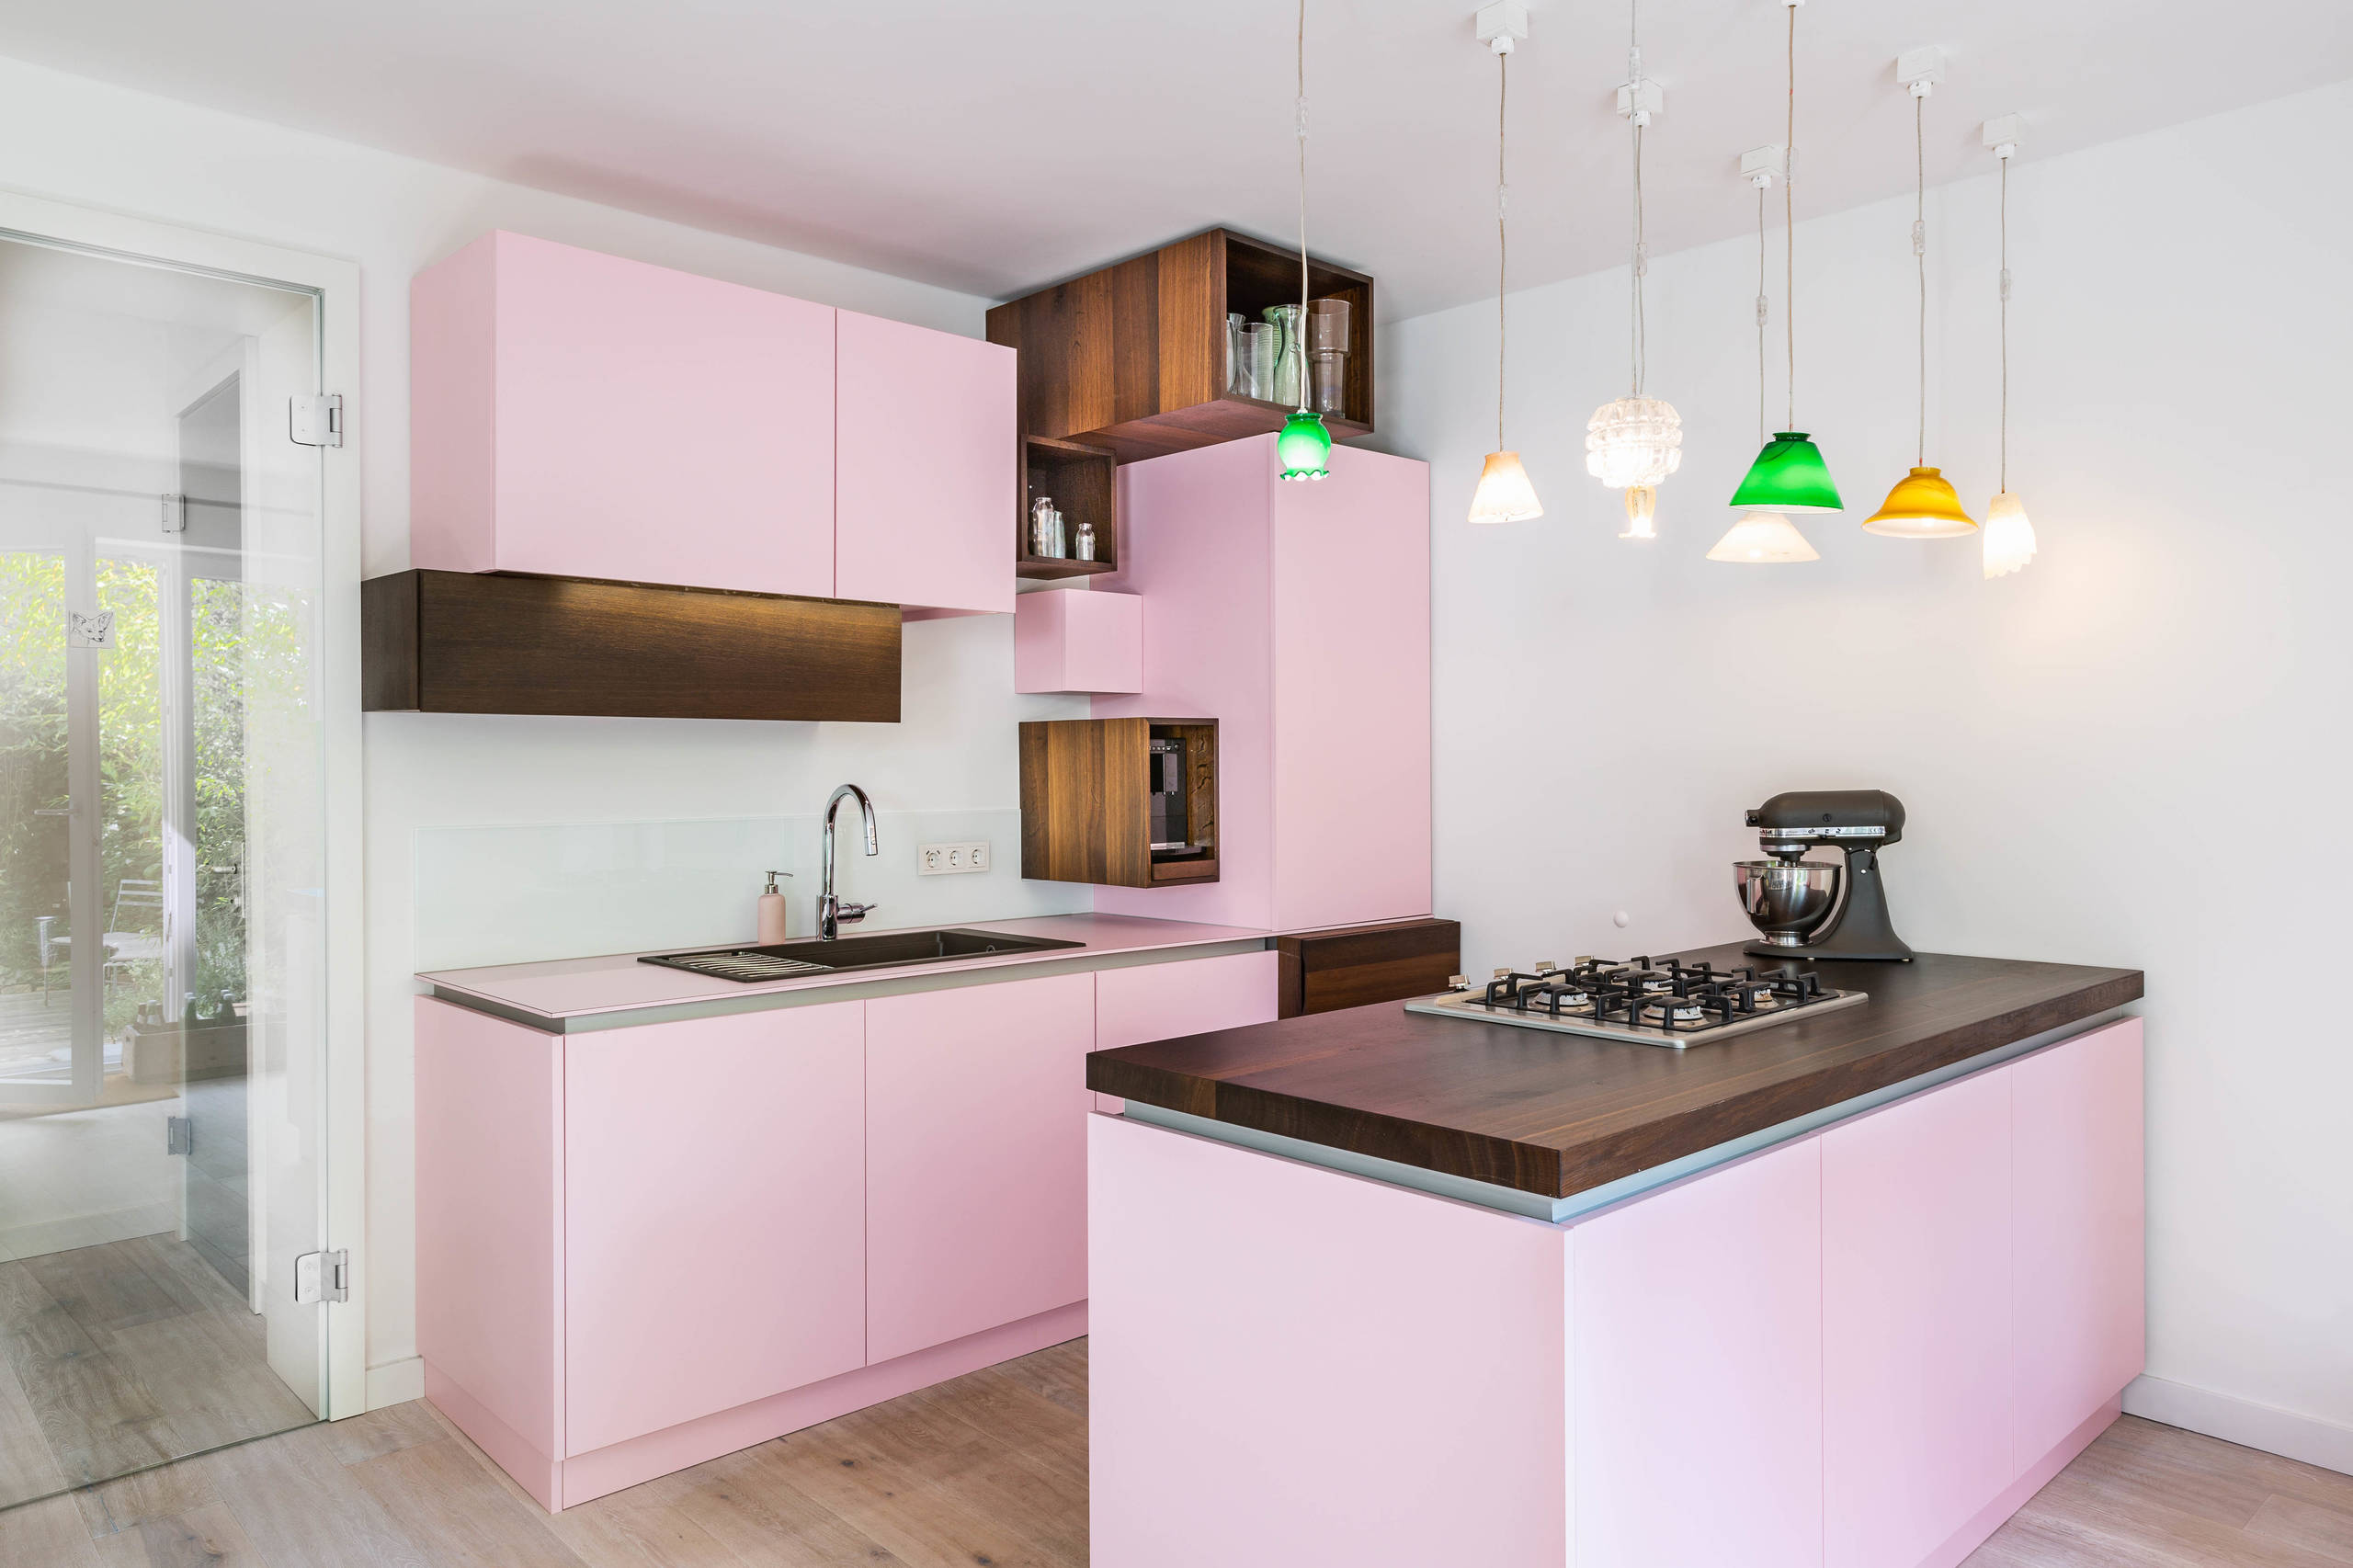 75 Beautiful Kitchen With Pink Countertops Pictures Ideas July 2021 Houzz